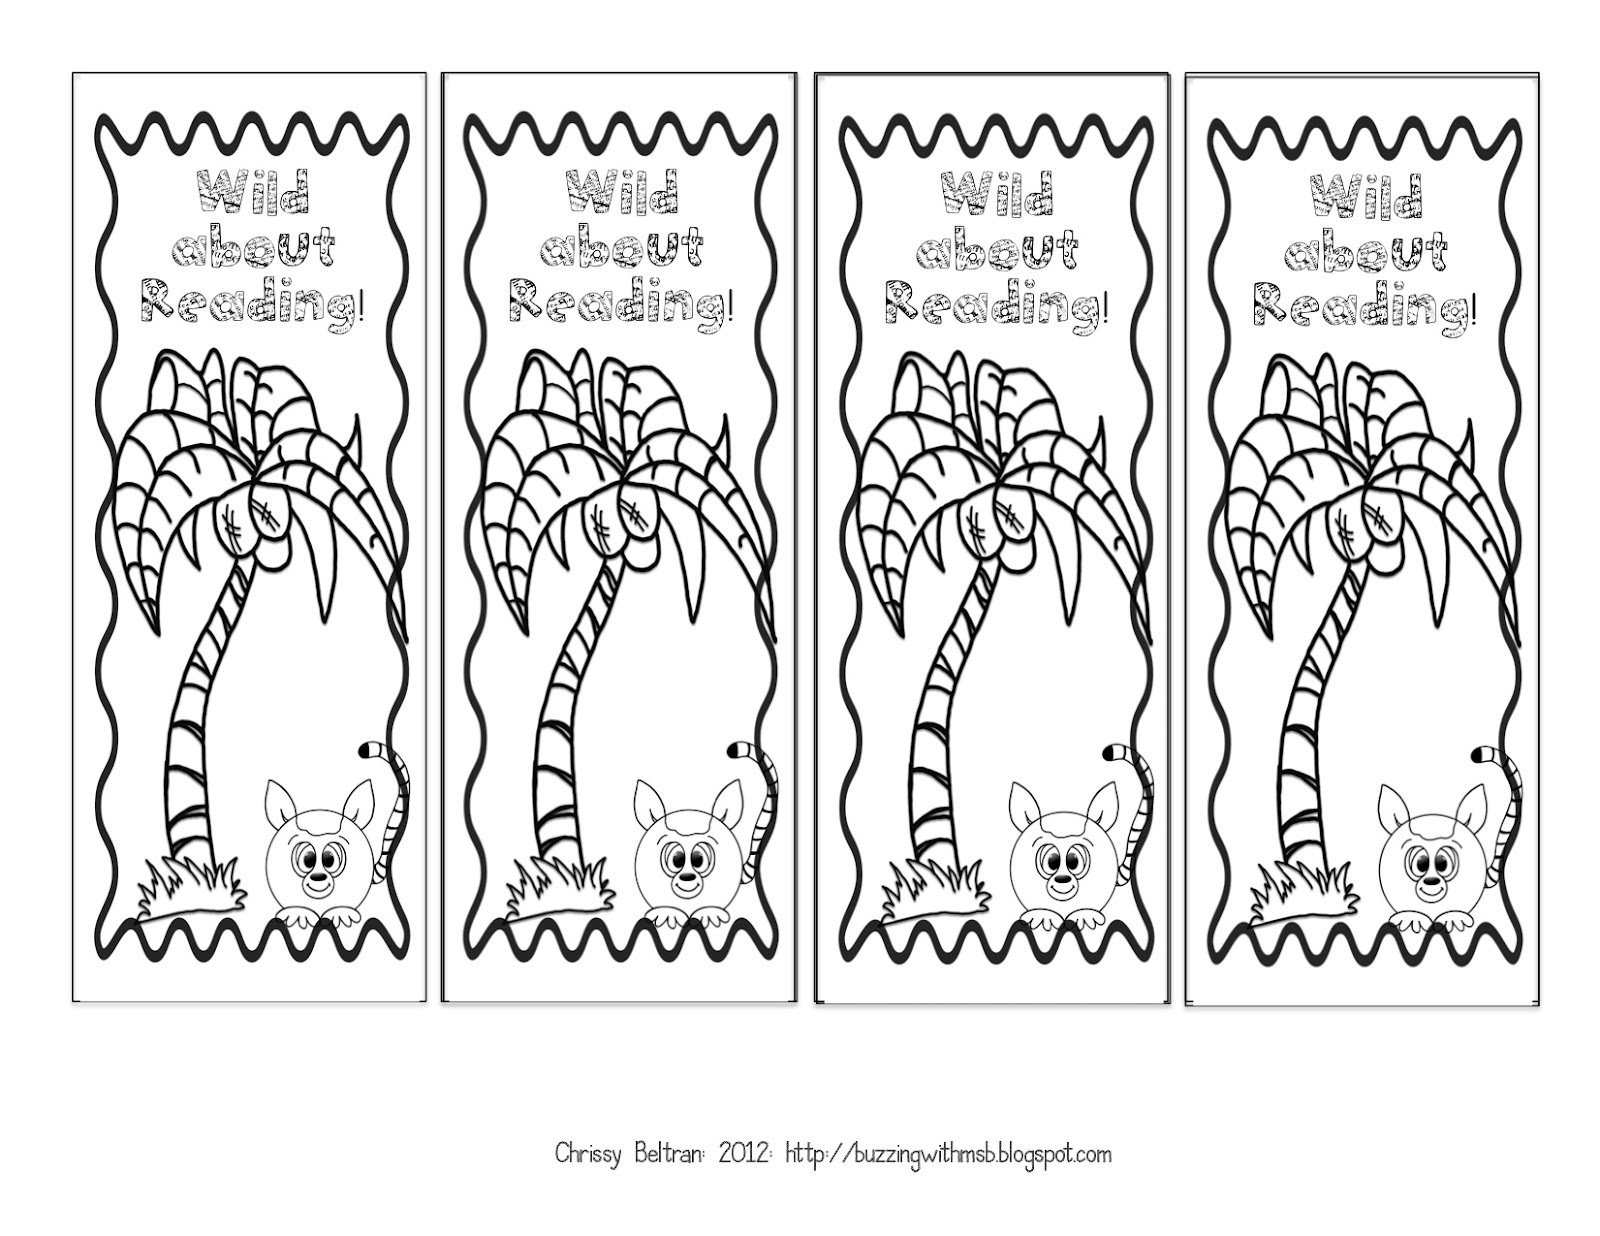 3-6 Free Resources: Printable Bookmarks